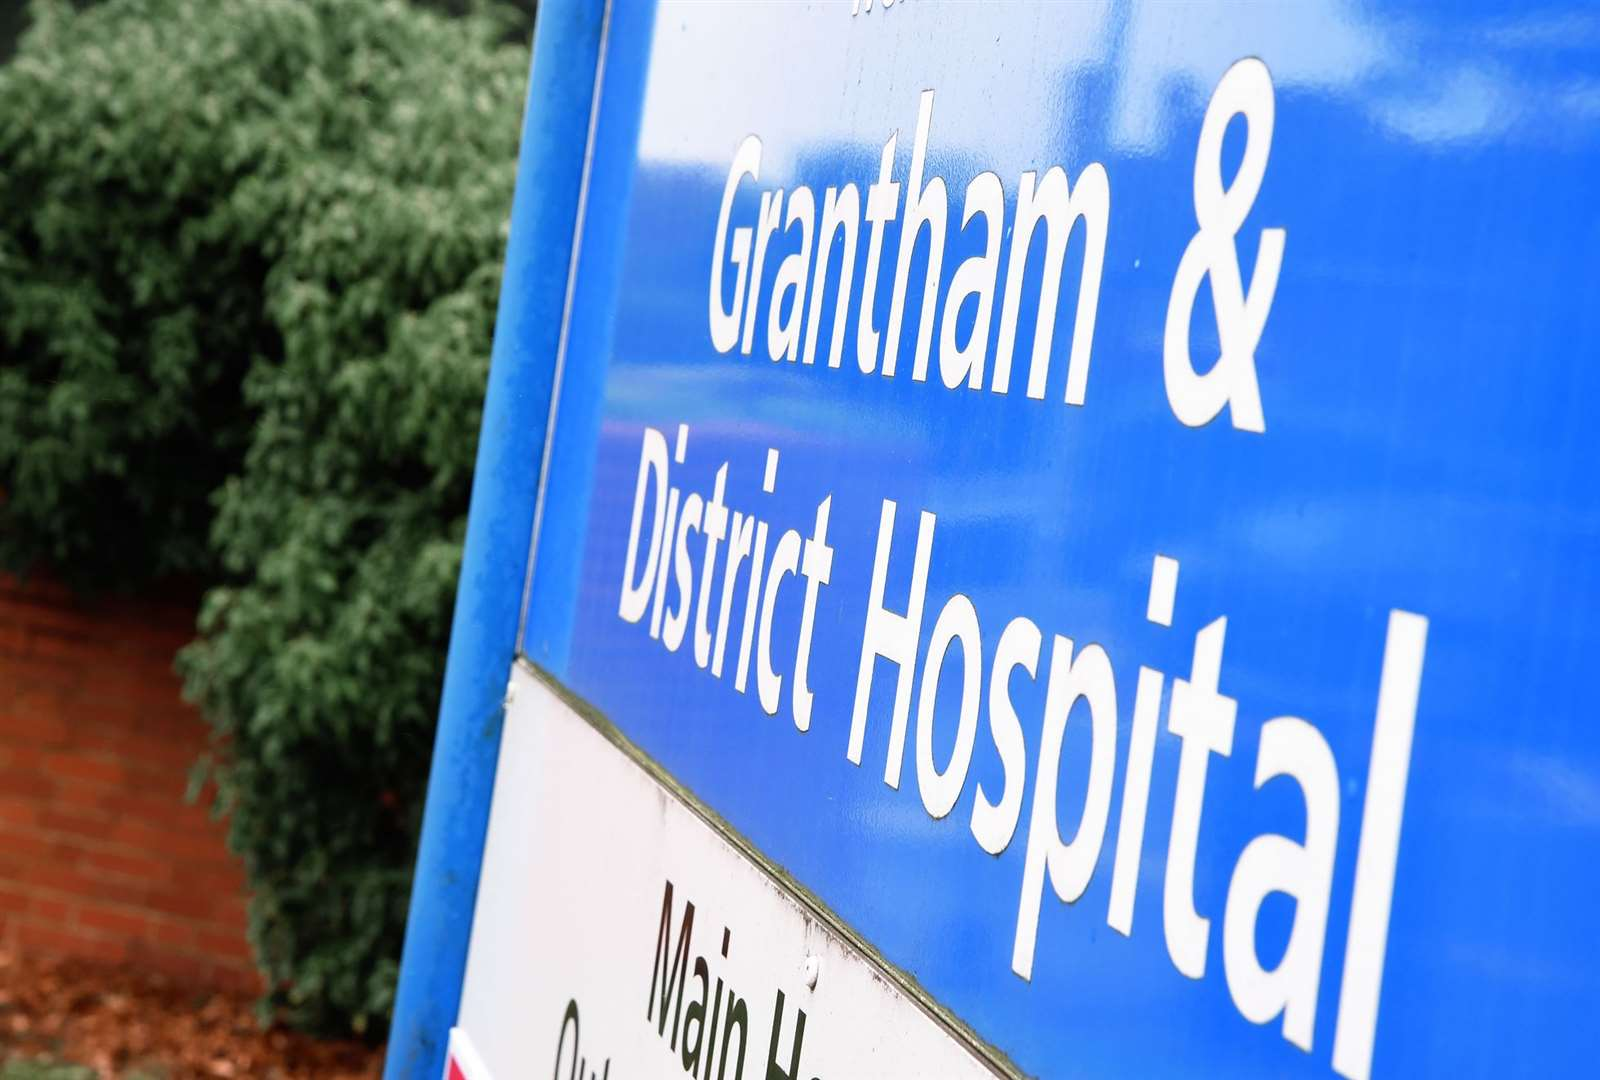 A rehabilitation ward will be opened at Grantham Hospital. (43124827)